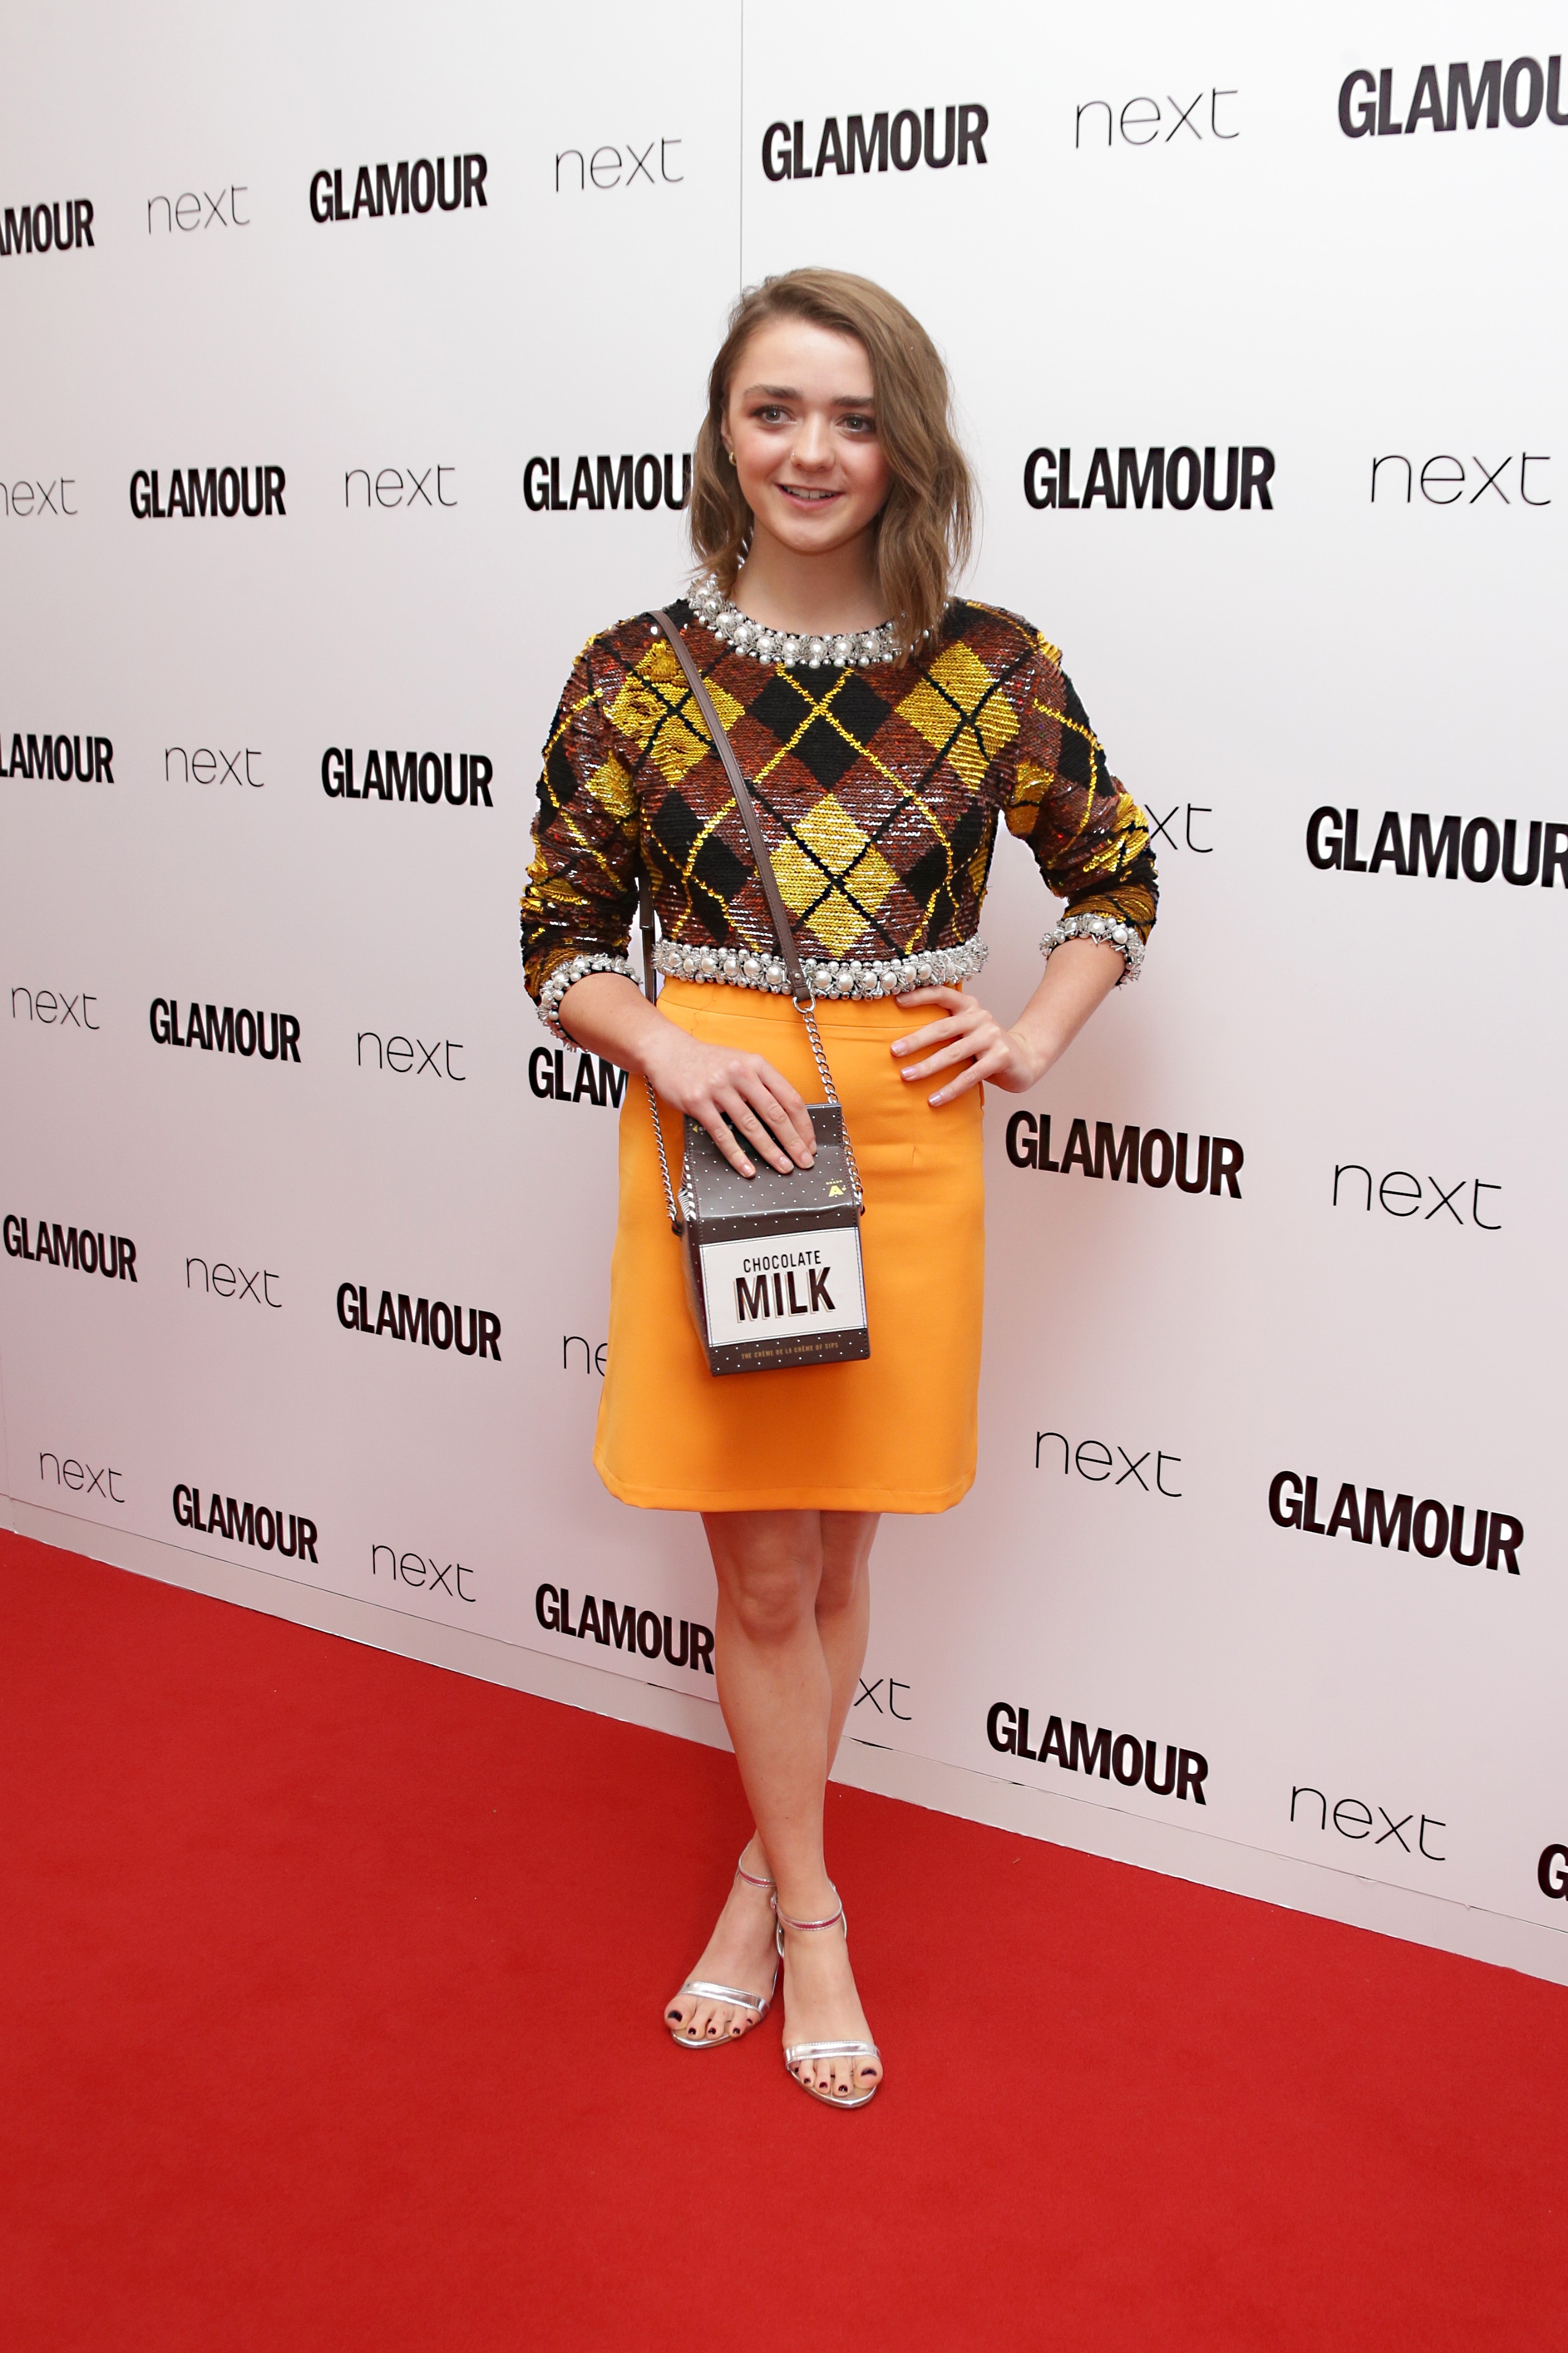 "<div class=""meta image-caption""><div class=""origin-logo origin-image ap""><span>AP</span></div><span class=""caption-text"">Maisie Williams poses for photographers upon arrival at the Glamour Women Of The Year Awards in London, Tuesday, 2 June, 2015. (Photo by Joel Ryan/Invision/AP) (Joel Ryan/Invision/AP)</span></div>"